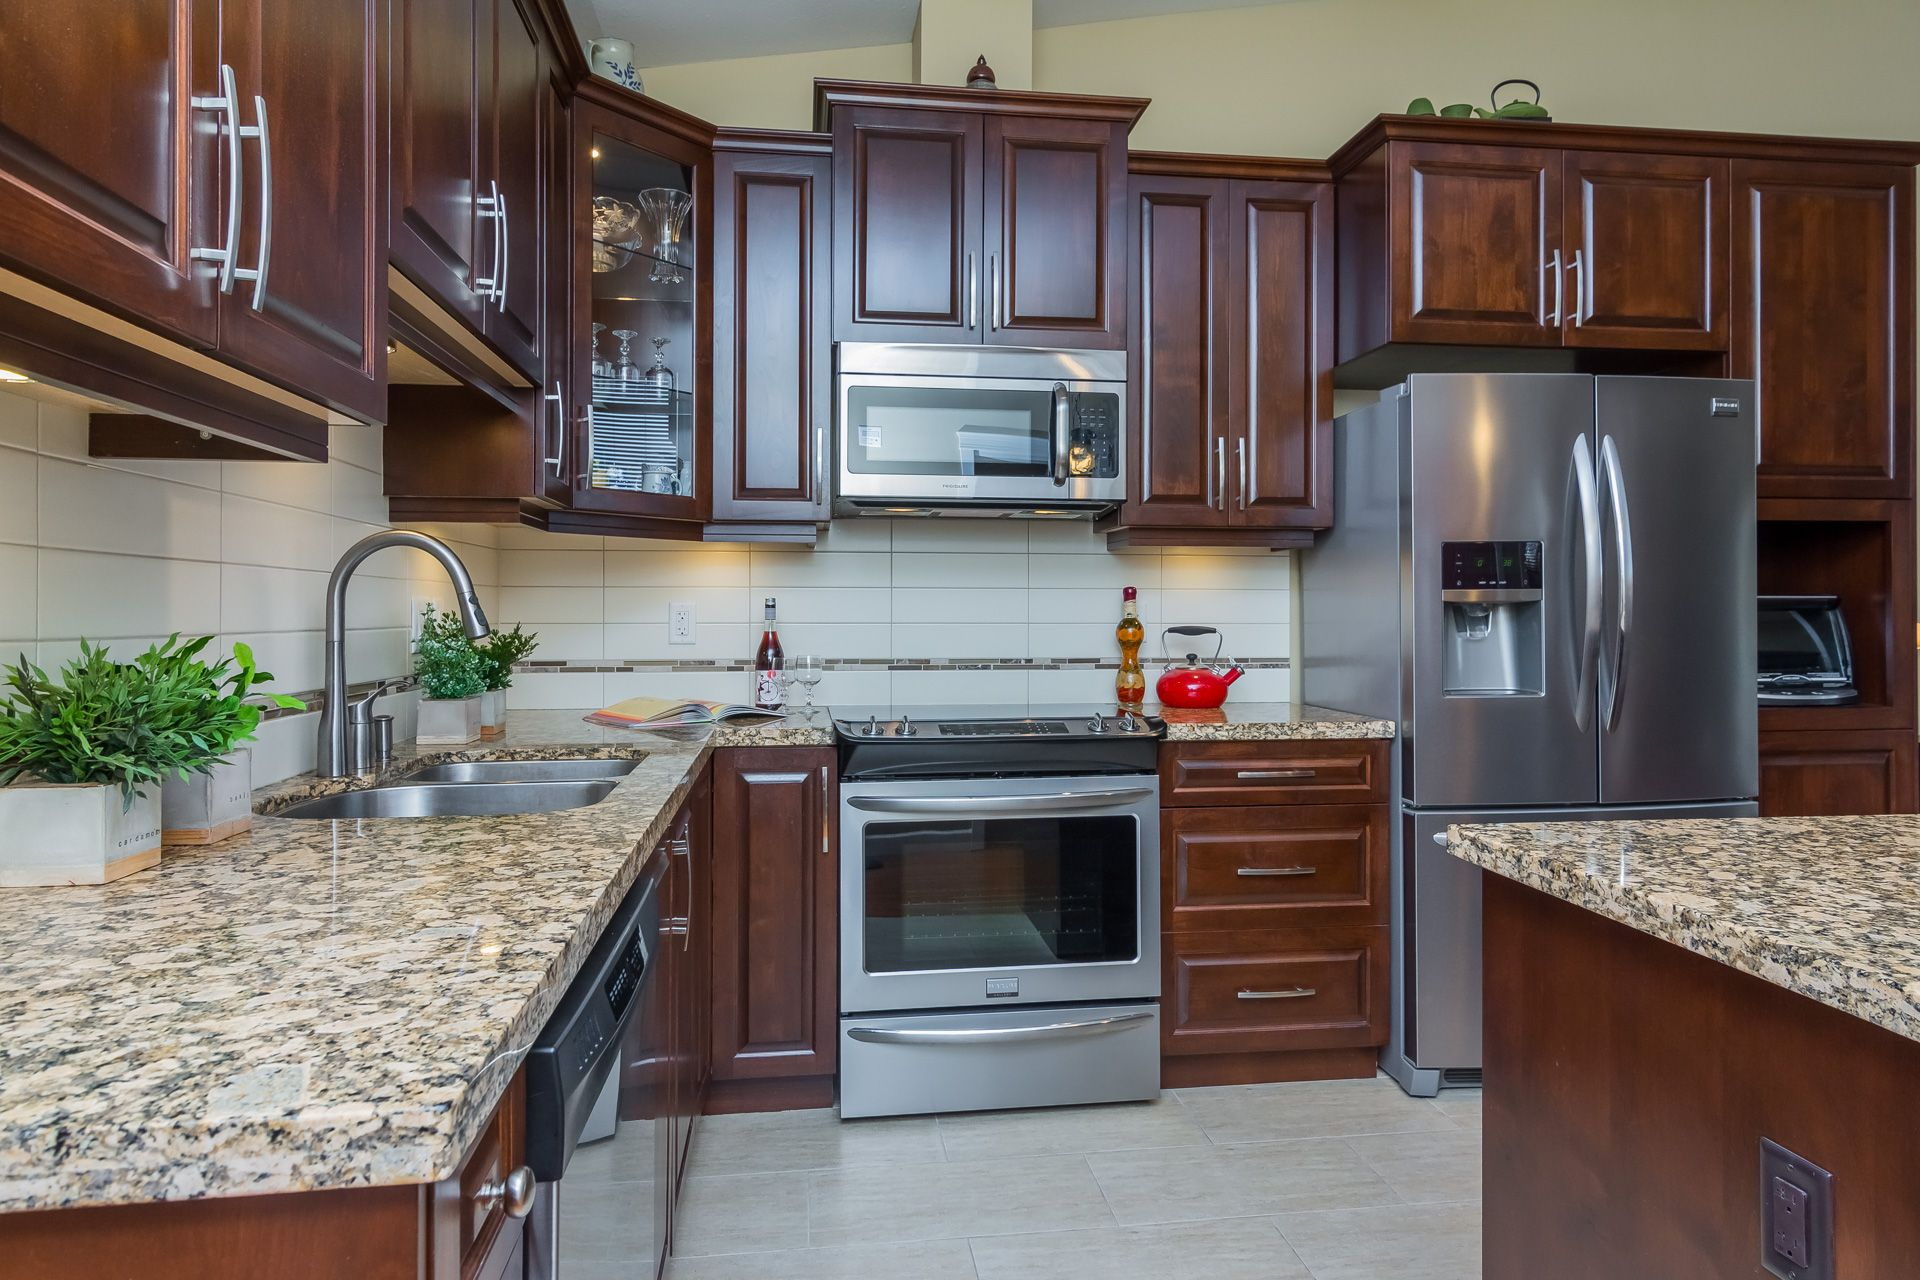 """Photo 16: Photos: 509 8258 207A Street in Langley: Willoughby Heights Condo for sale in """"YORKSON CREEK (BLG A)"""" : MLS®# R2221052"""